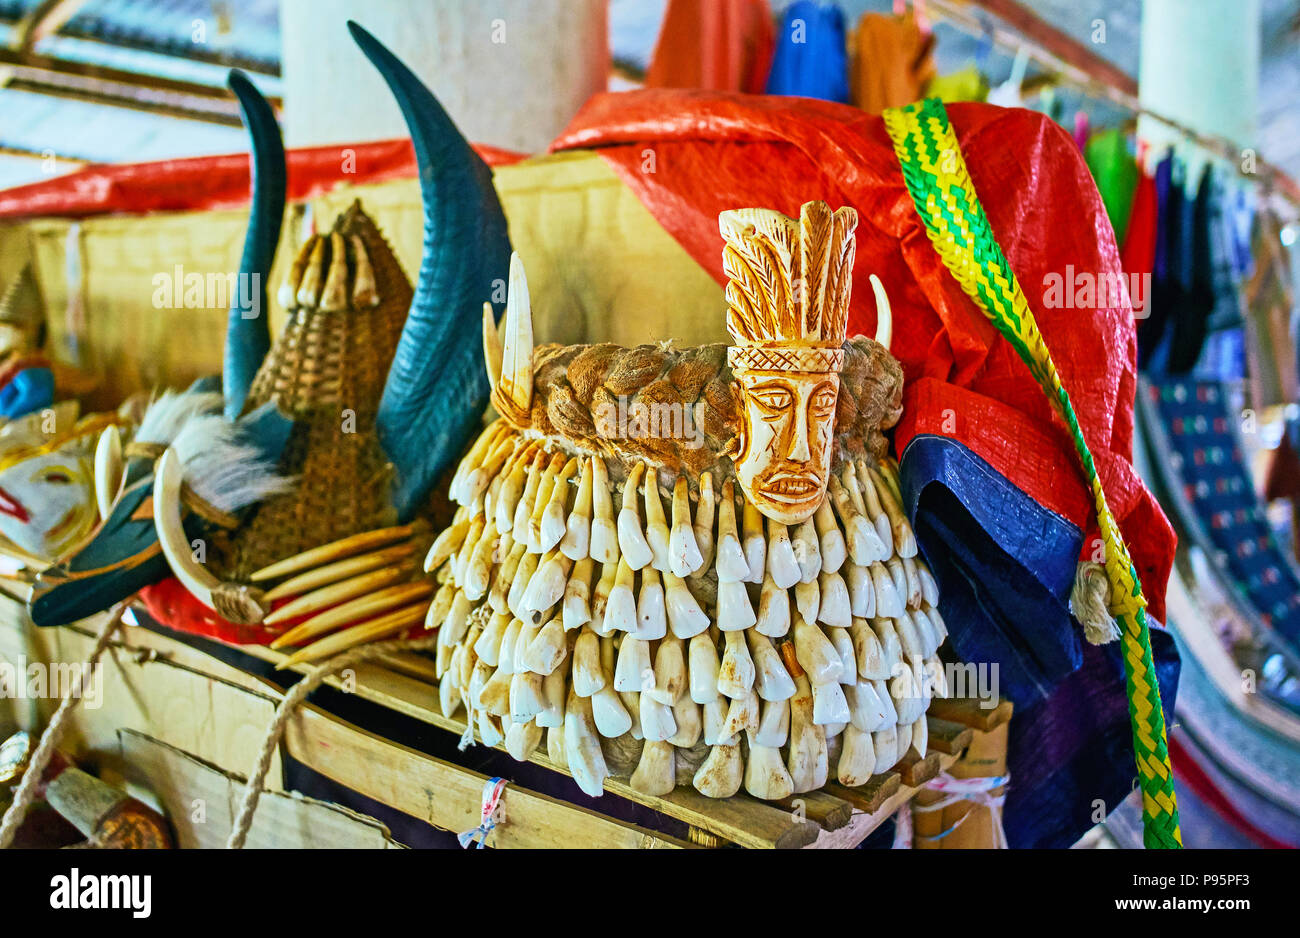 The unusual souvenir - tribal male headdress, decorated with animals' teeth, handicraft market of Inn Thein (Indein) village on Inle Lake, Myanmar. - Stock Image